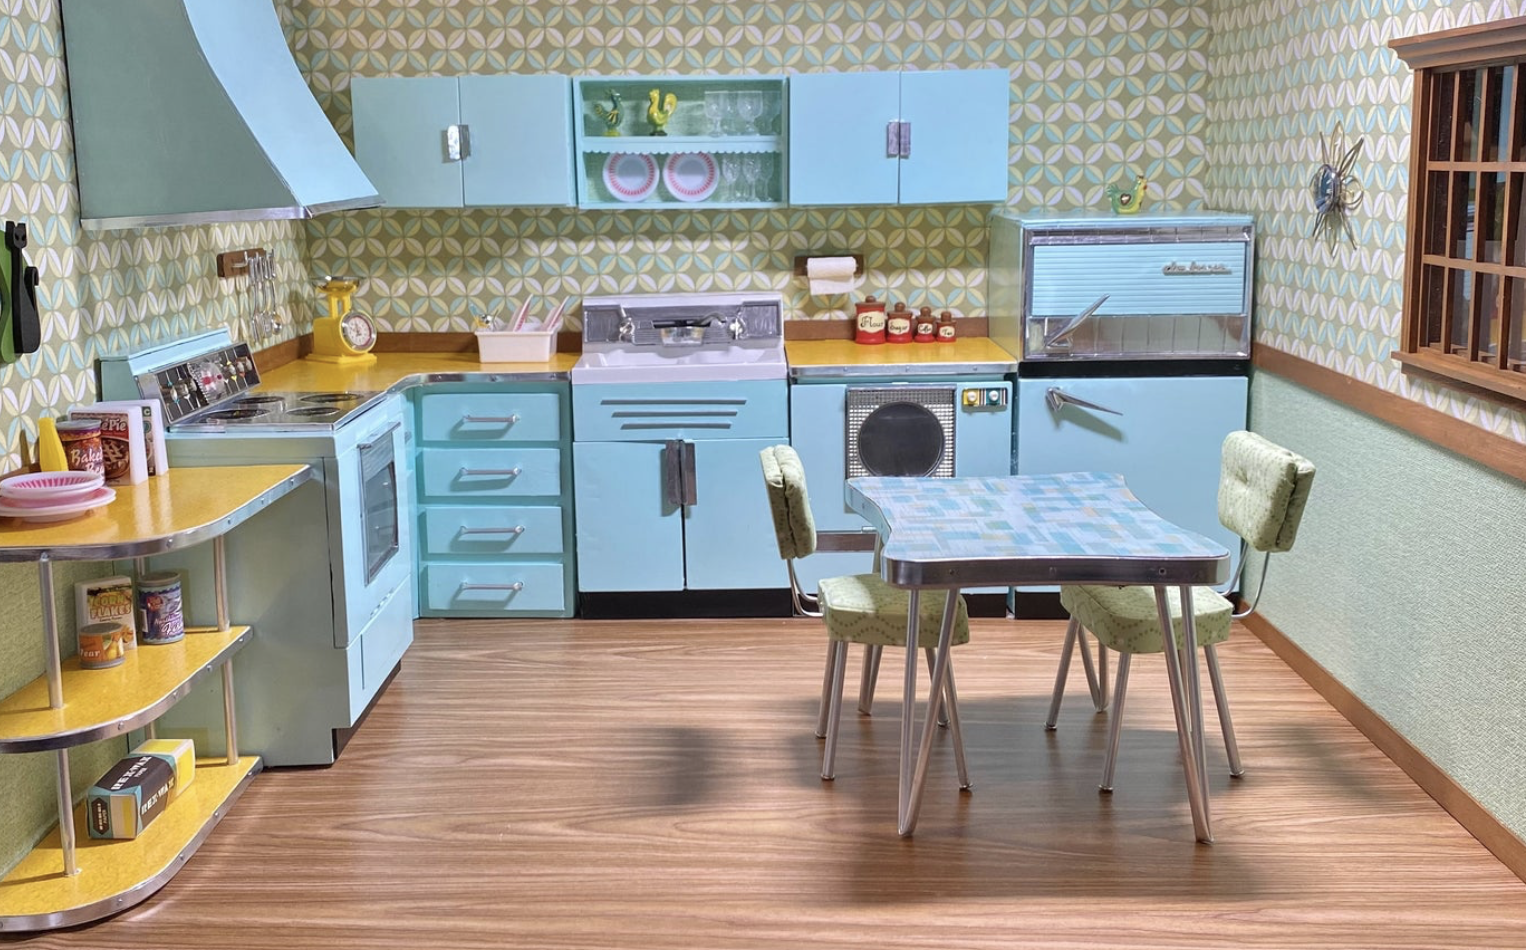 TheAtomicDoll Mid Century Furniture and Dioramas Barbie Size Covington, Georgia  Custom hand crafted room box with vintage style kitchen. Vintage mint green, aqua blues, golds and greens. The box measures 20 inches deep x 23 inches wide x 18 inches tall. The box is all wood, three sides, and a floor. Some of the cabinets and appliances are vintage and have been re-habbed. The stove, refrigerator, upper cabinets and under sink do all open, but the corner cabinets are faux. There are vintage style custom made Formica counter tops with real metal banding, as well as an atomic shelf with it. The table and chairs are custom made. Everything in the photos comes with this kitchen except for the dolls. All hand made ,custom, one of a kind. For the adult collector. Not intended as a toy